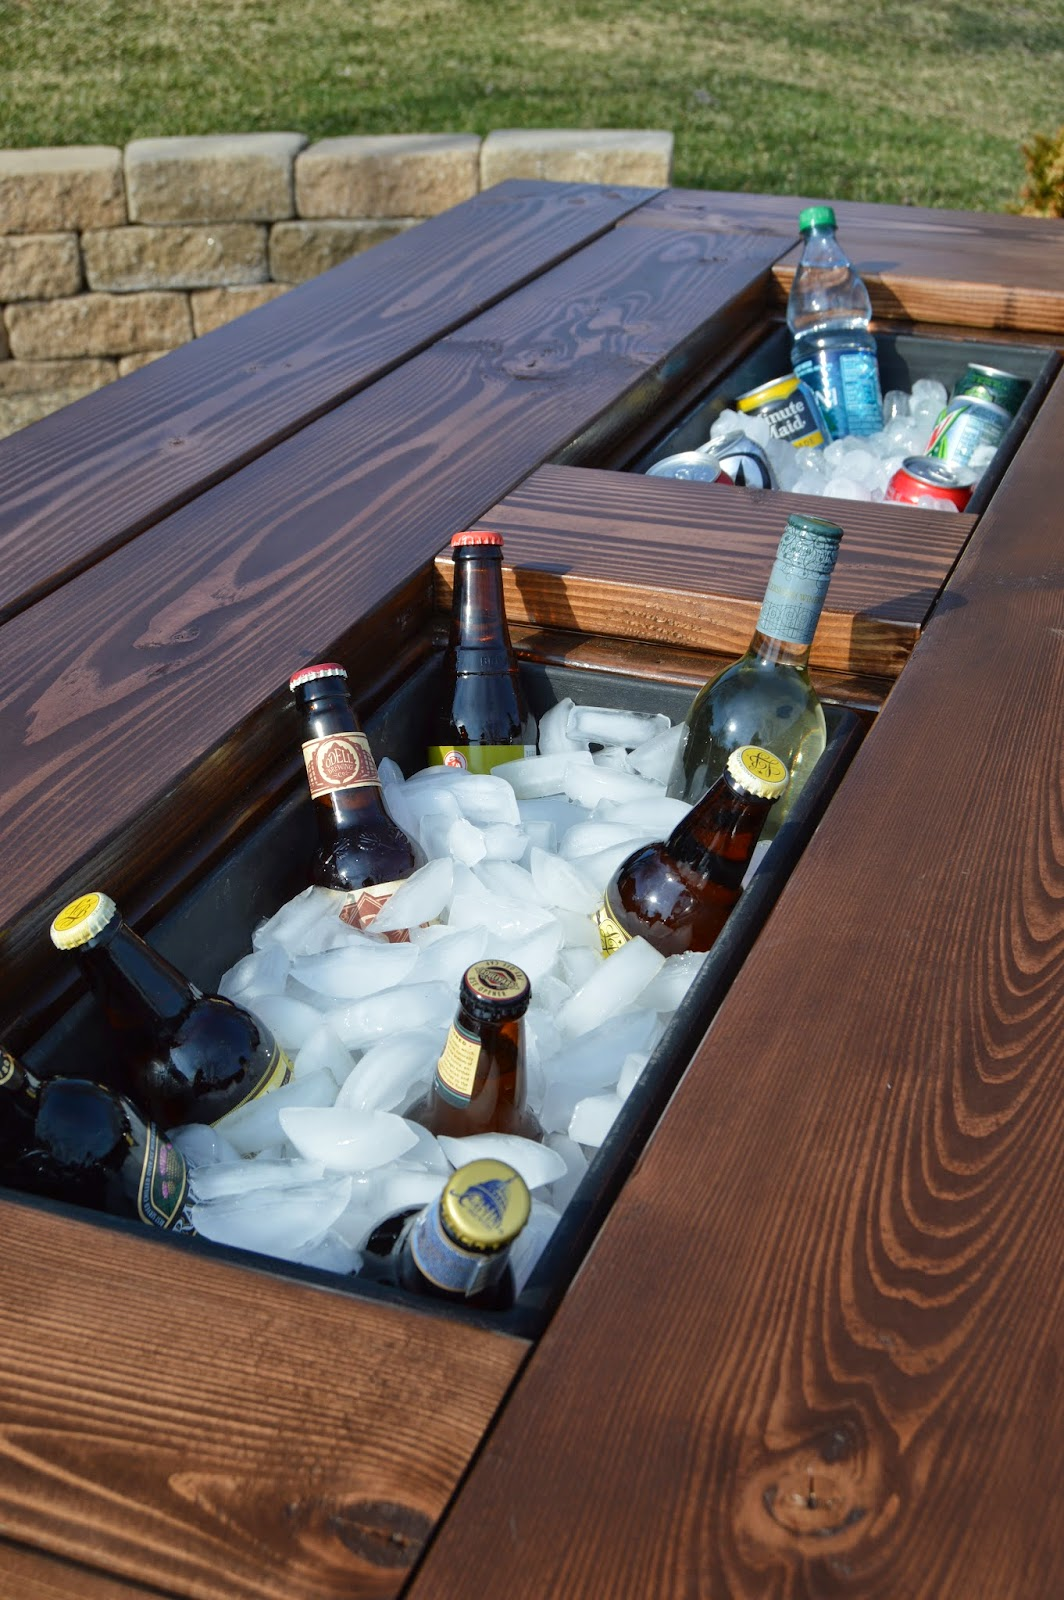 Marvelous Build A Patio Table With Built In Ice Boxes